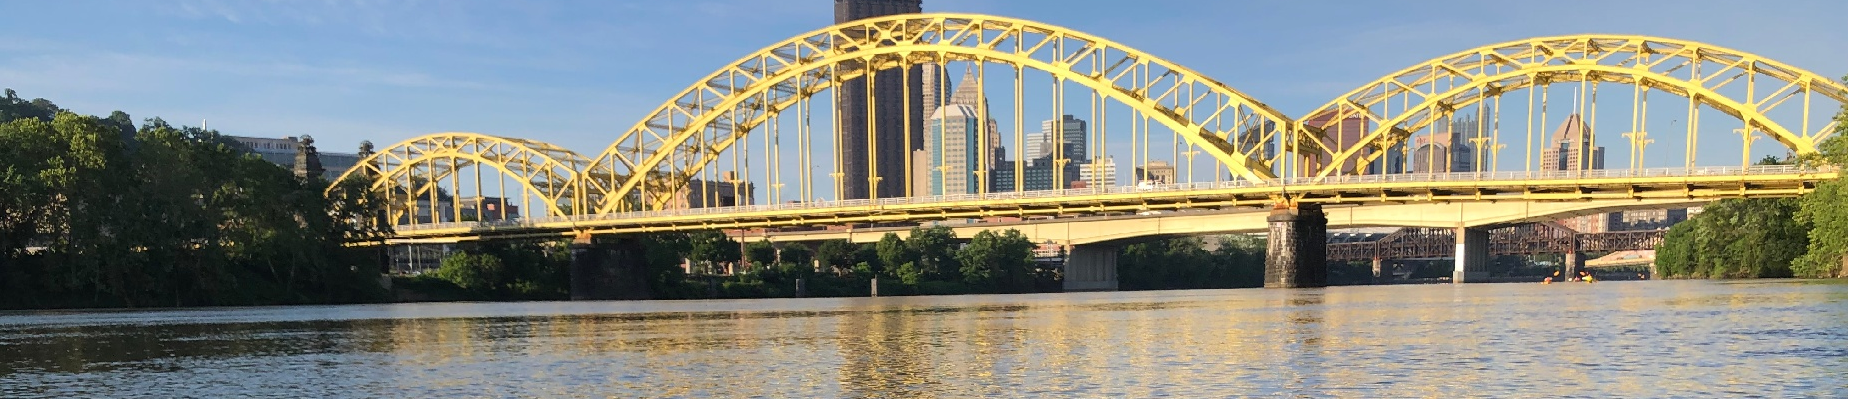 Yellow bridge with Pittsburgh skyline in the background during the day